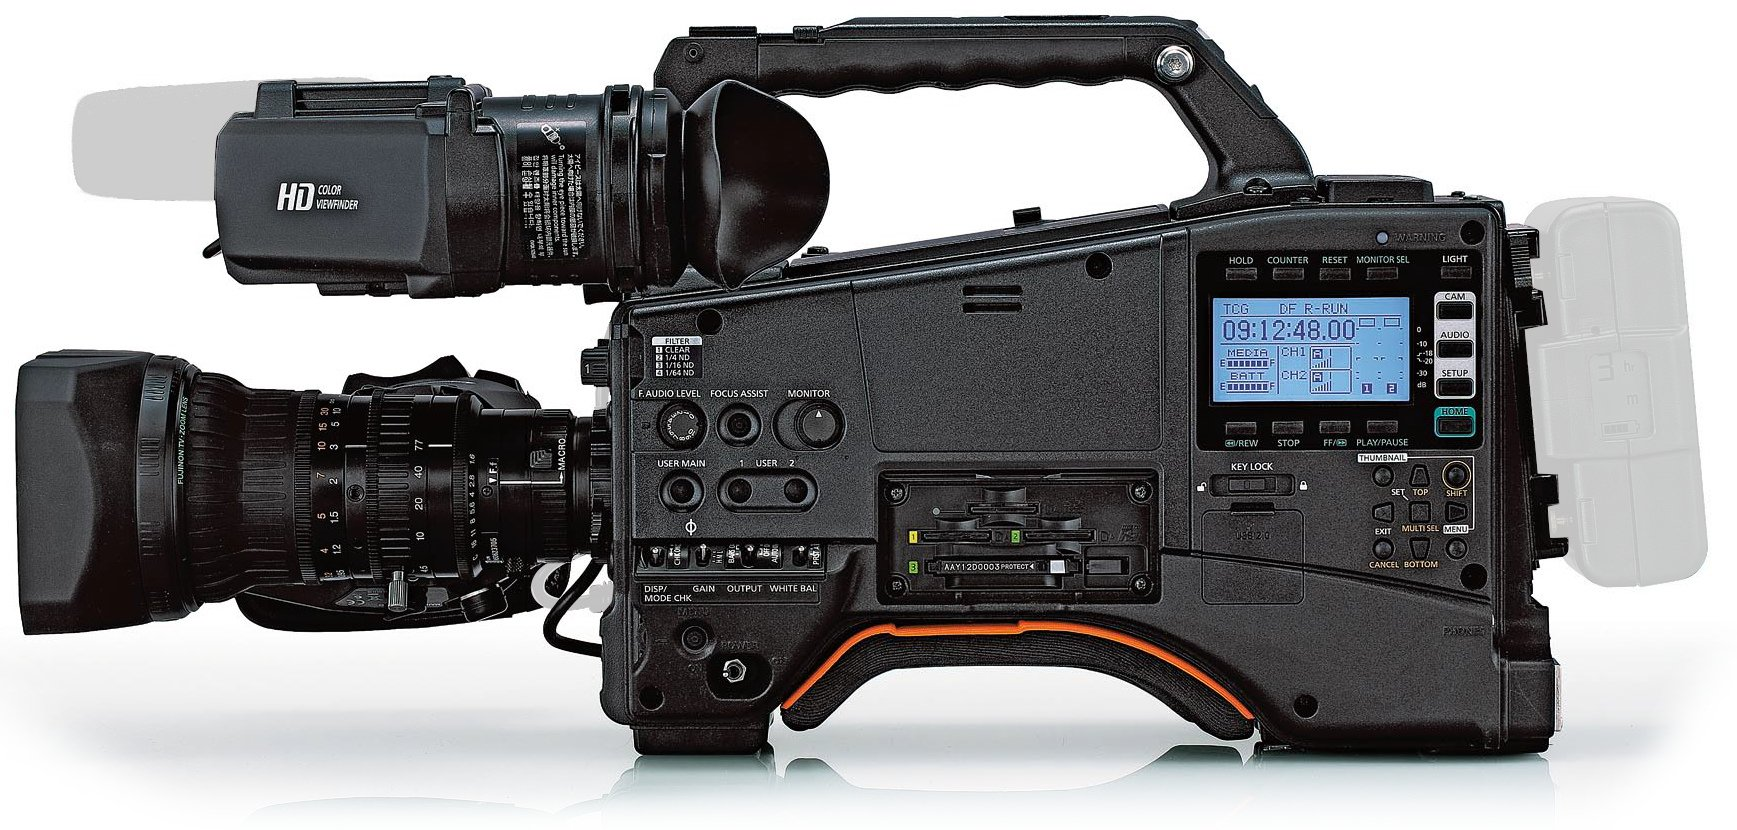 AVC-ULTRA Camcorder with AG-CVF15G Color LCD Viewfinder and FUJINON 17x Zoom Lens